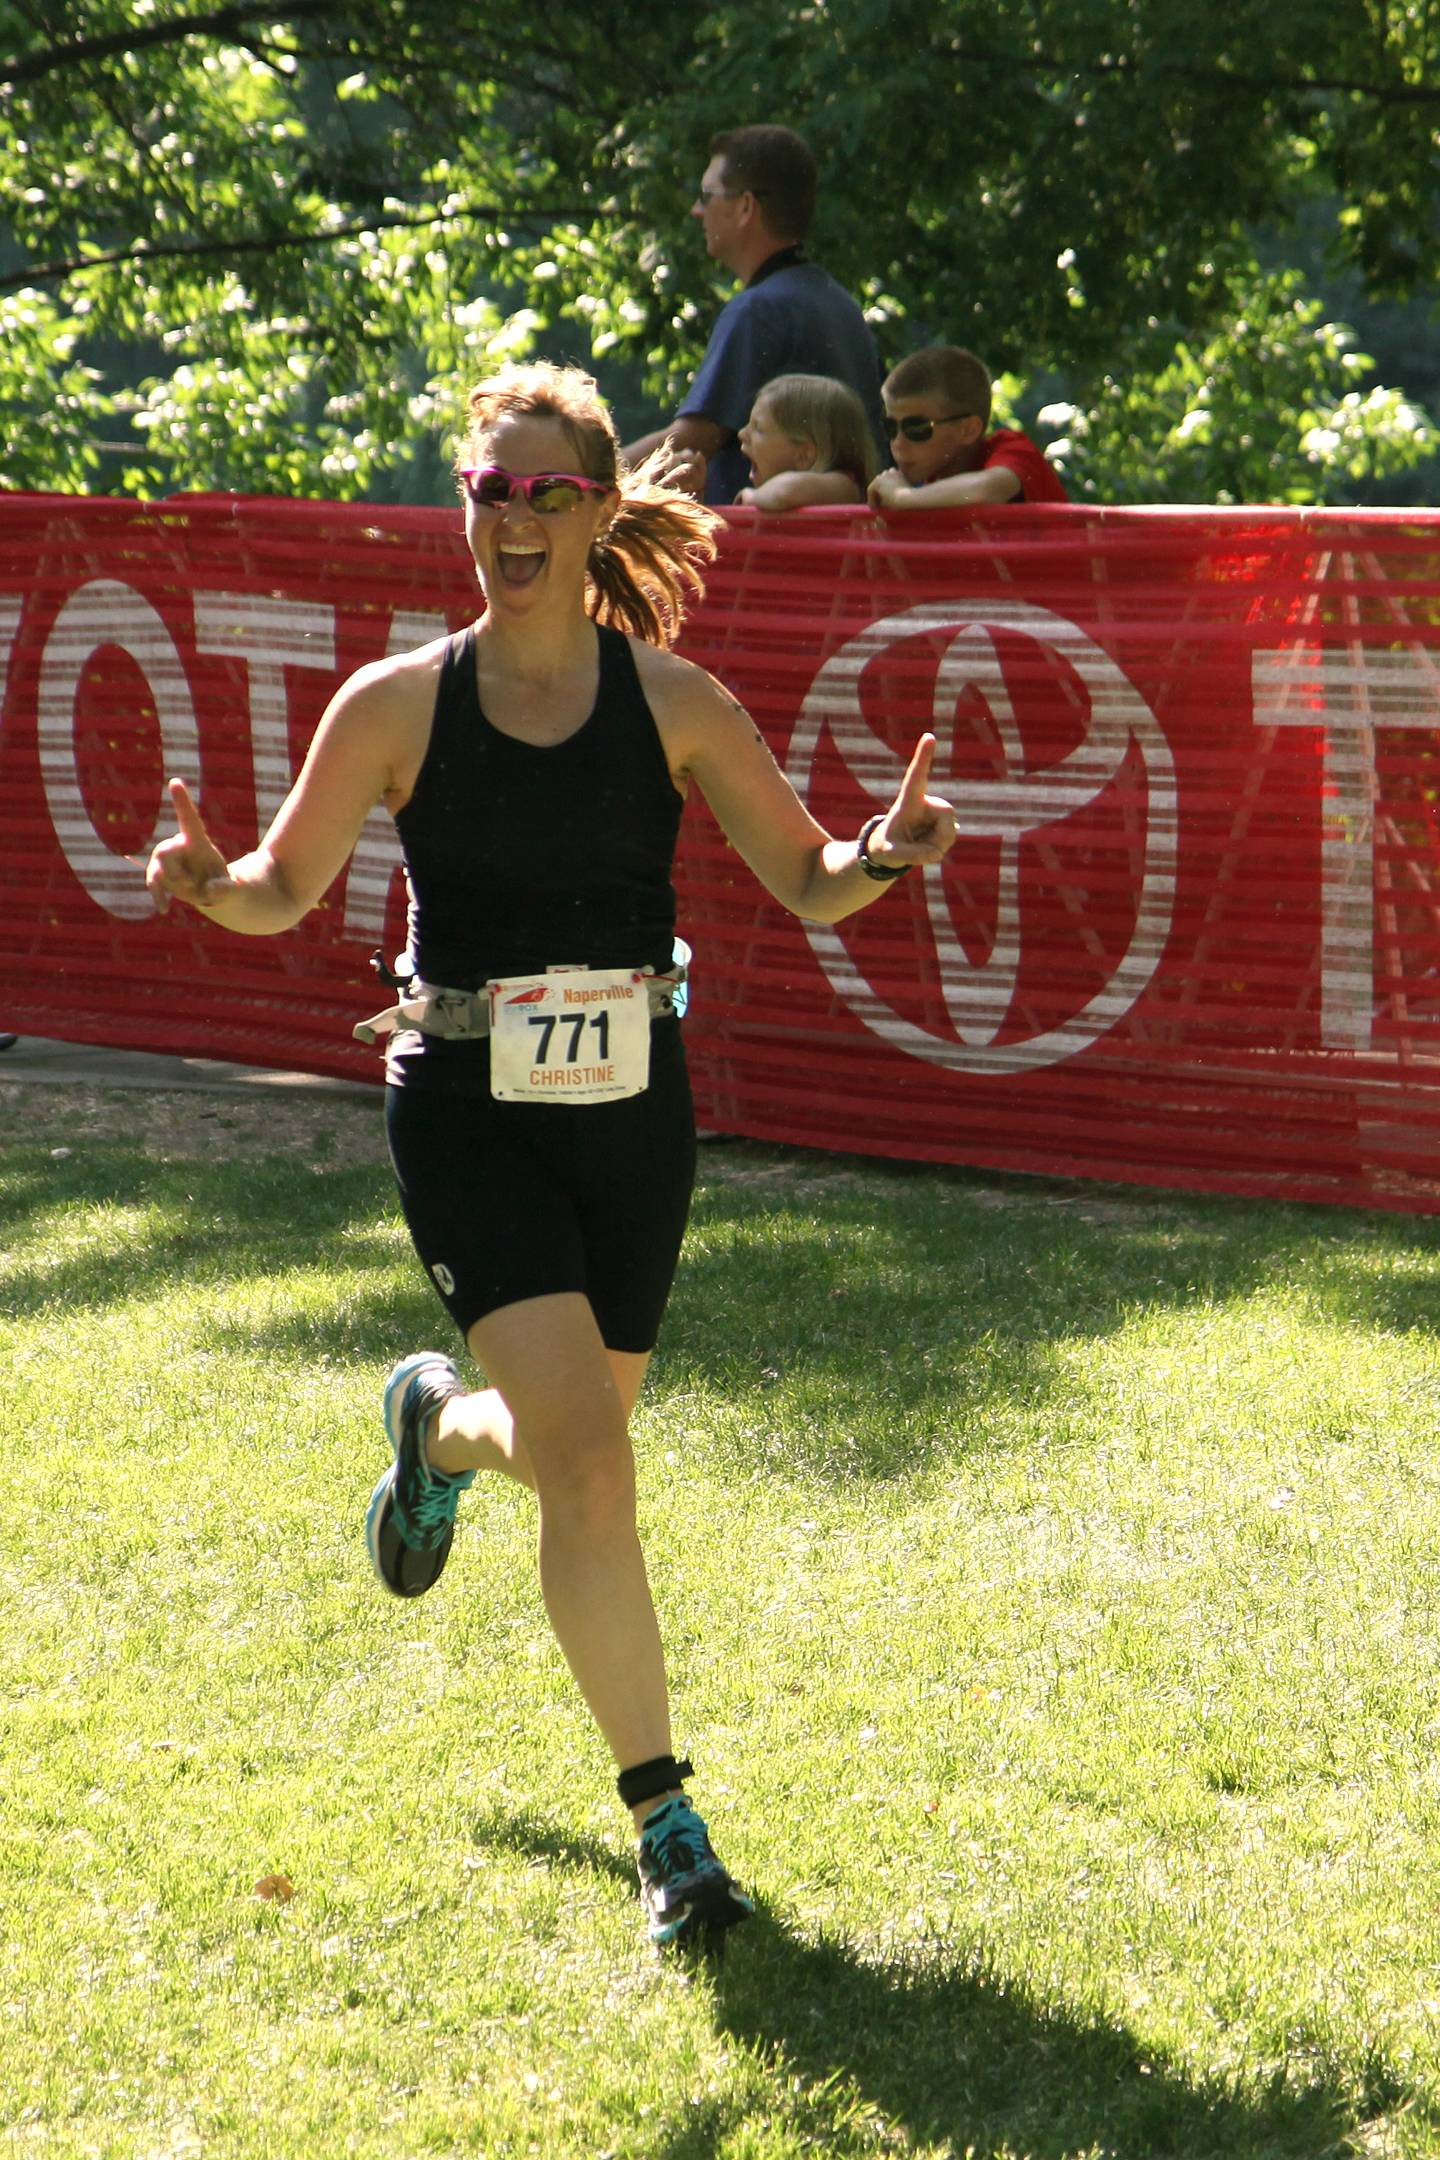 Baxter employee and DetermiNation runner Christine Marie Snyder in a previous race.